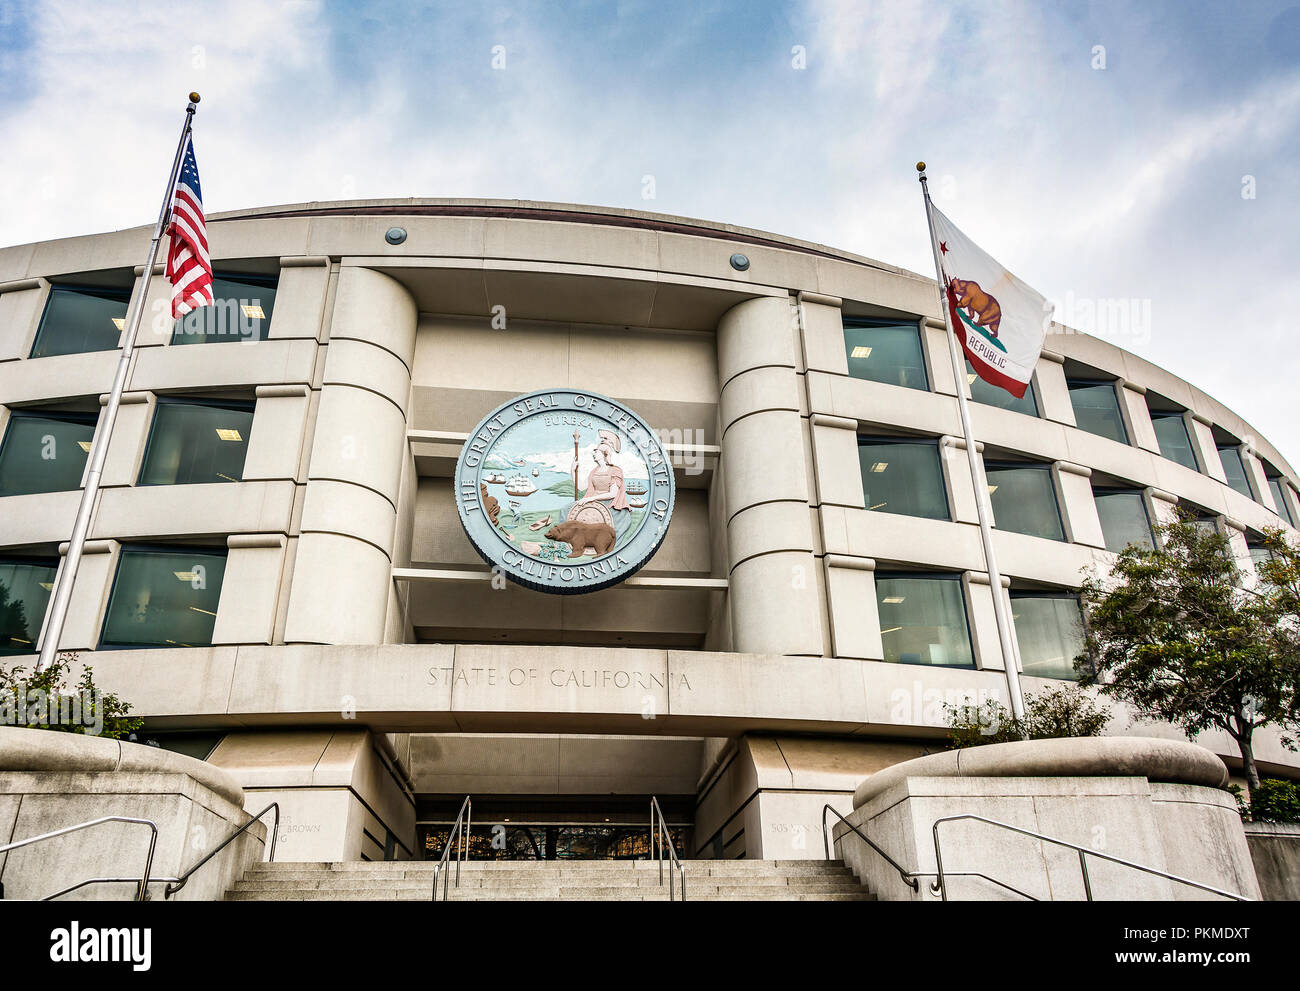 San Francisco, CA, USA, October 26th 2016: Main entrance of the California Public Utilities Commission headquarters building in San Francisco, Califor - Stock Image